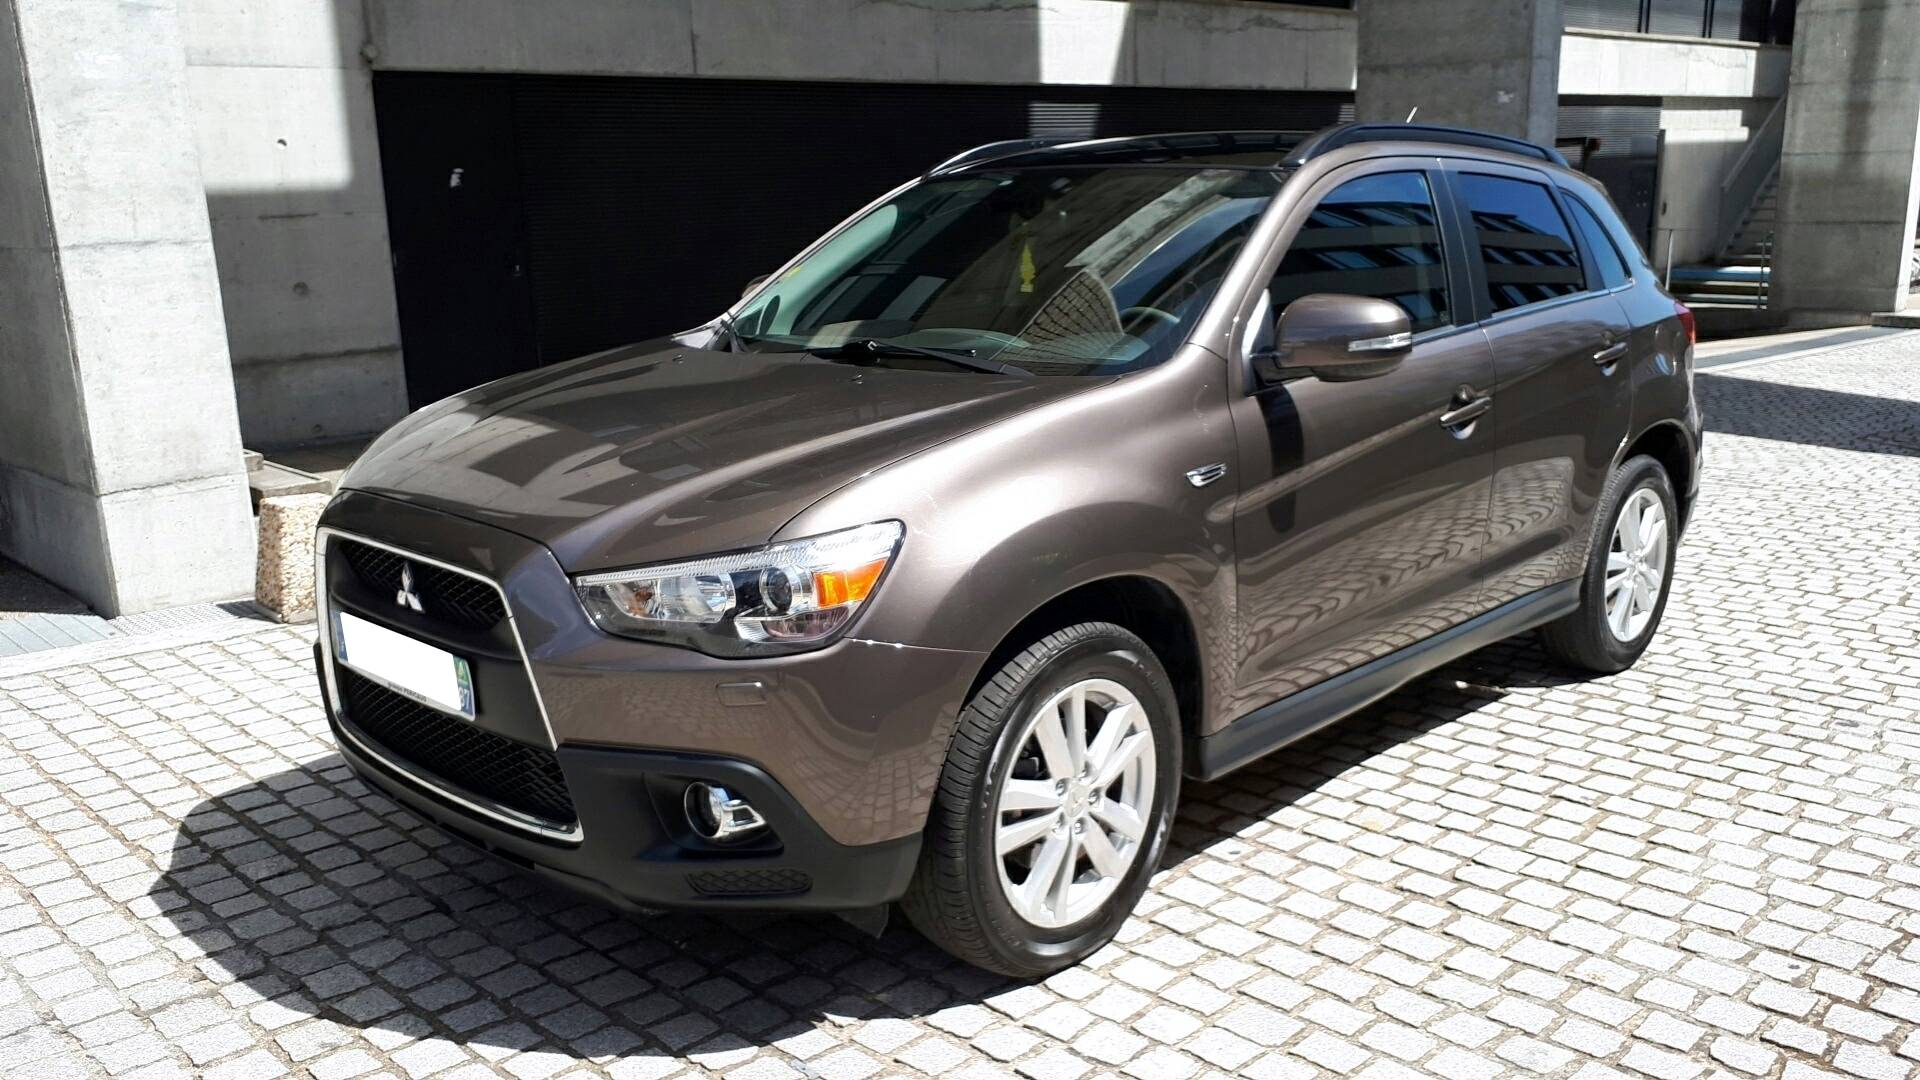 mitsubishi asx d u0026 39 occasion 1 8 did 150 instyle 4wd limoges